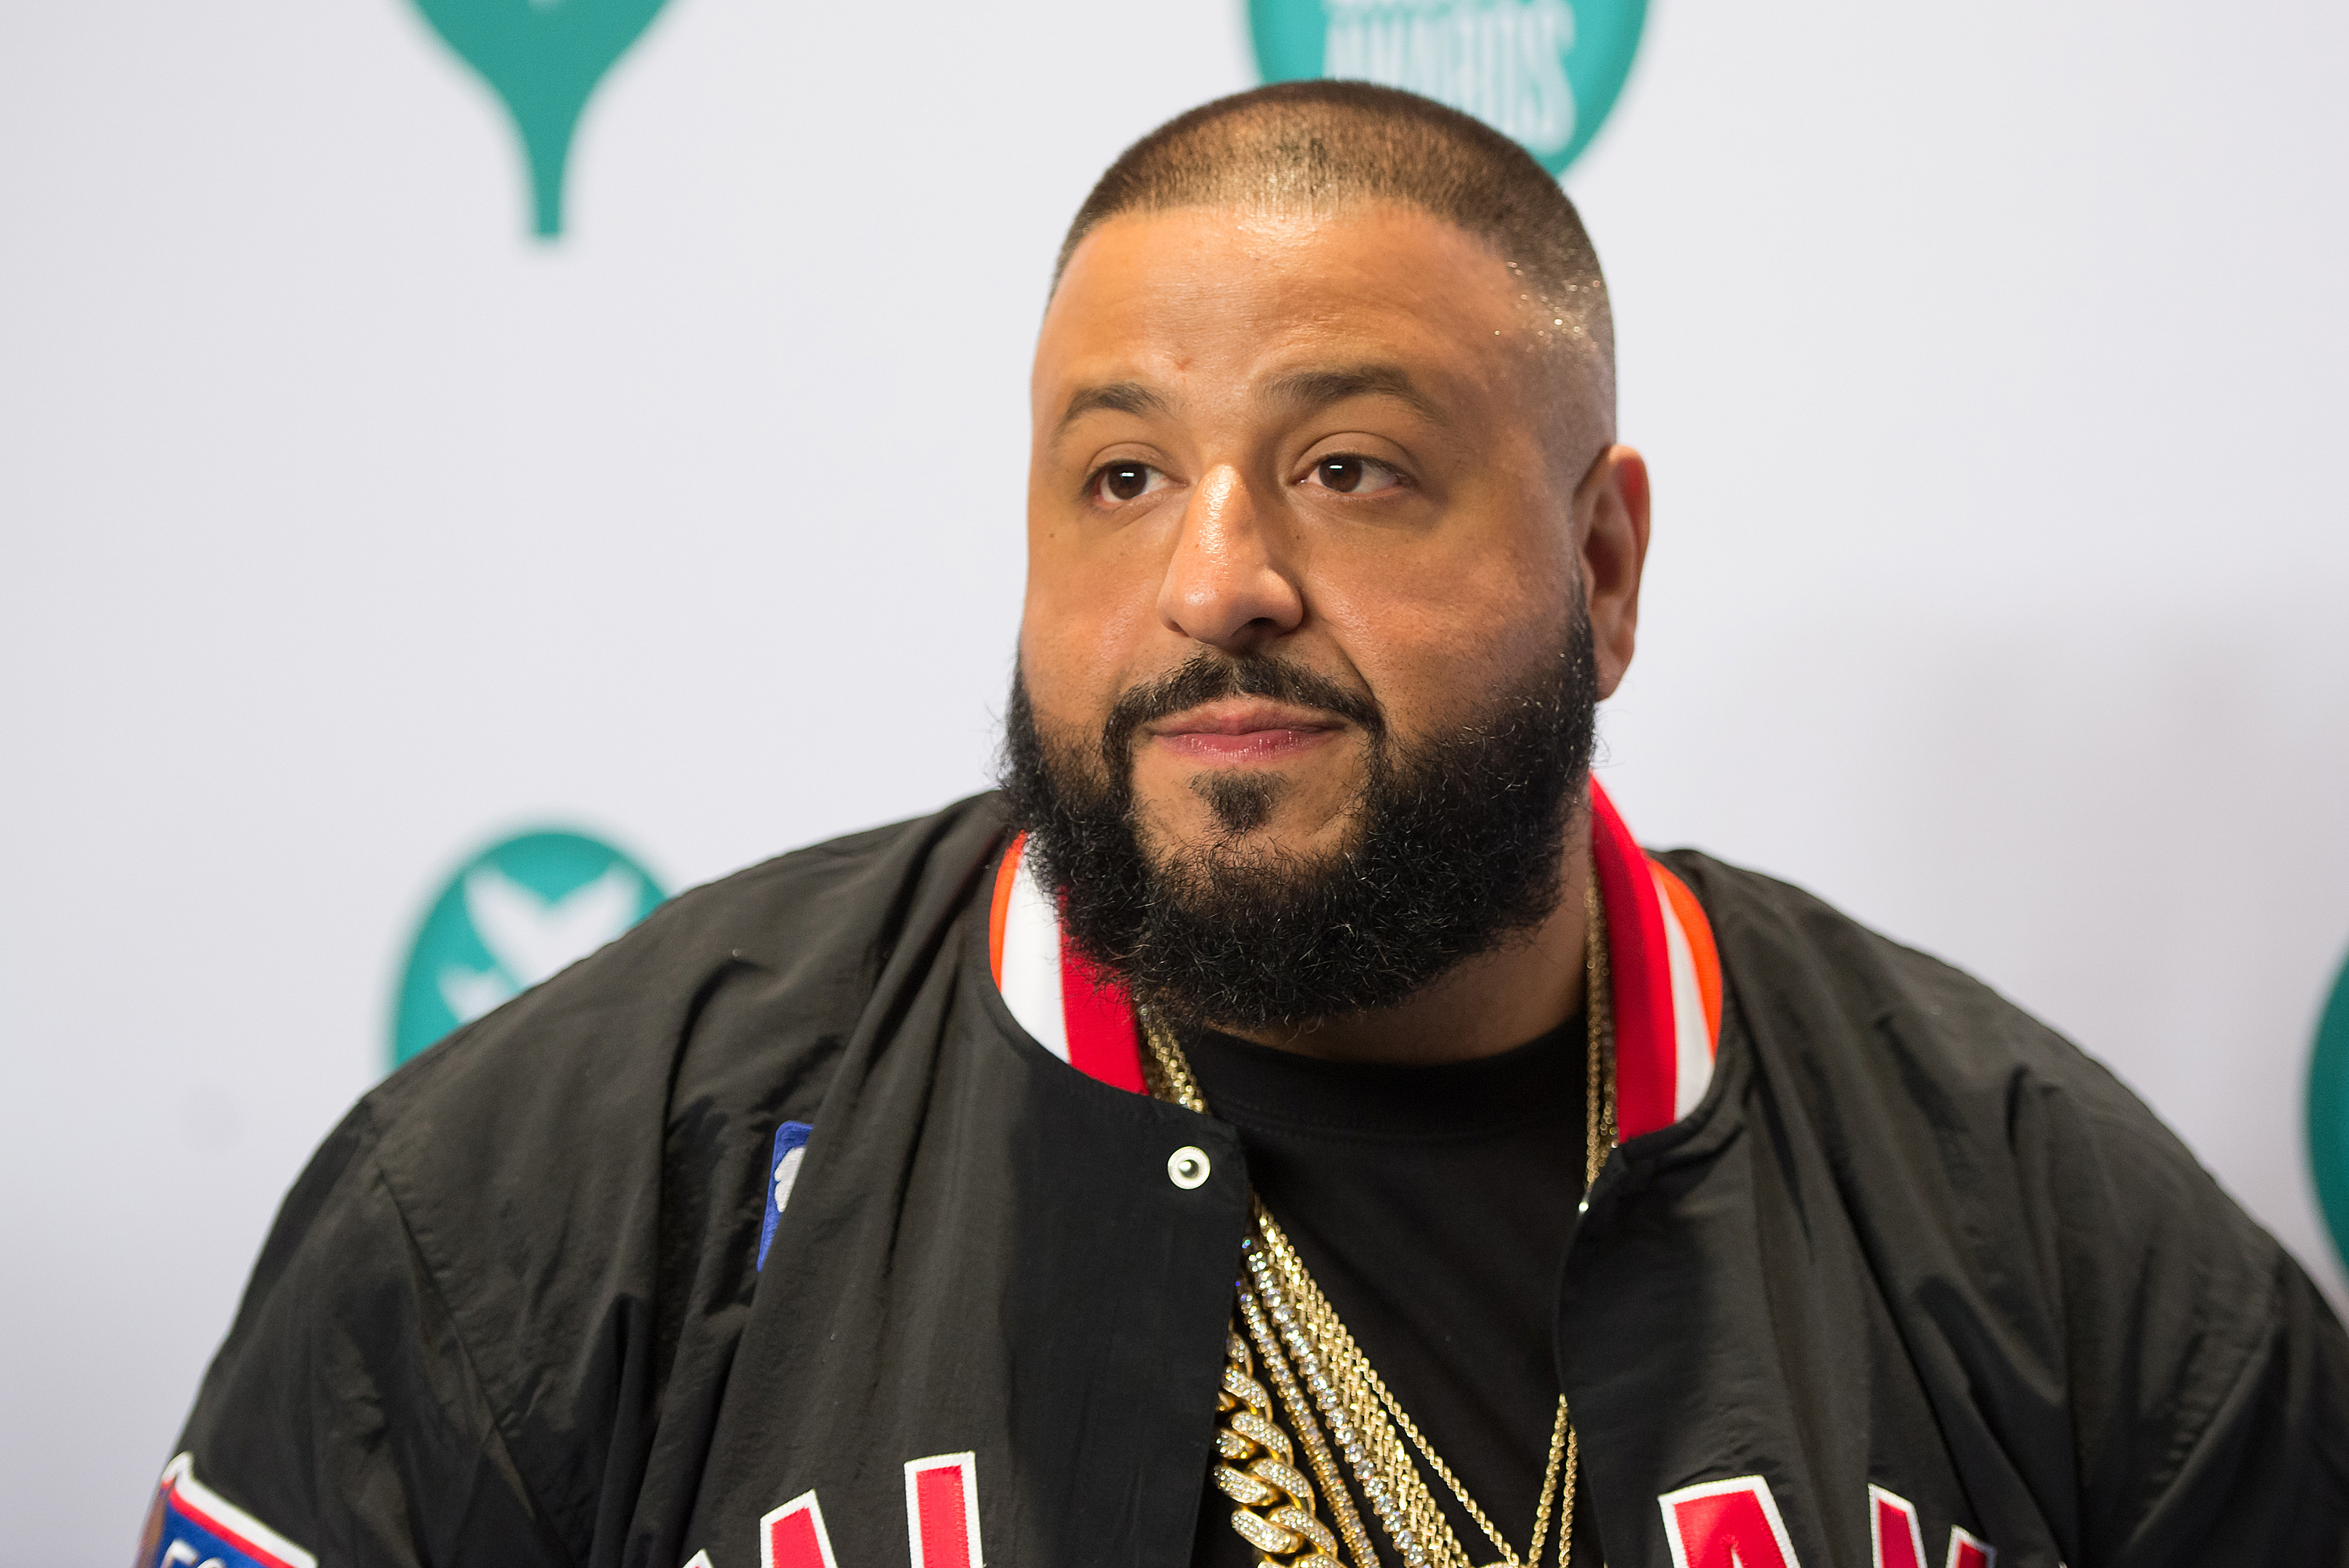 DJ Khaled attends the 8th Annual Shorty Awards at The New York Times Center on April 11, 2016 in New York City.